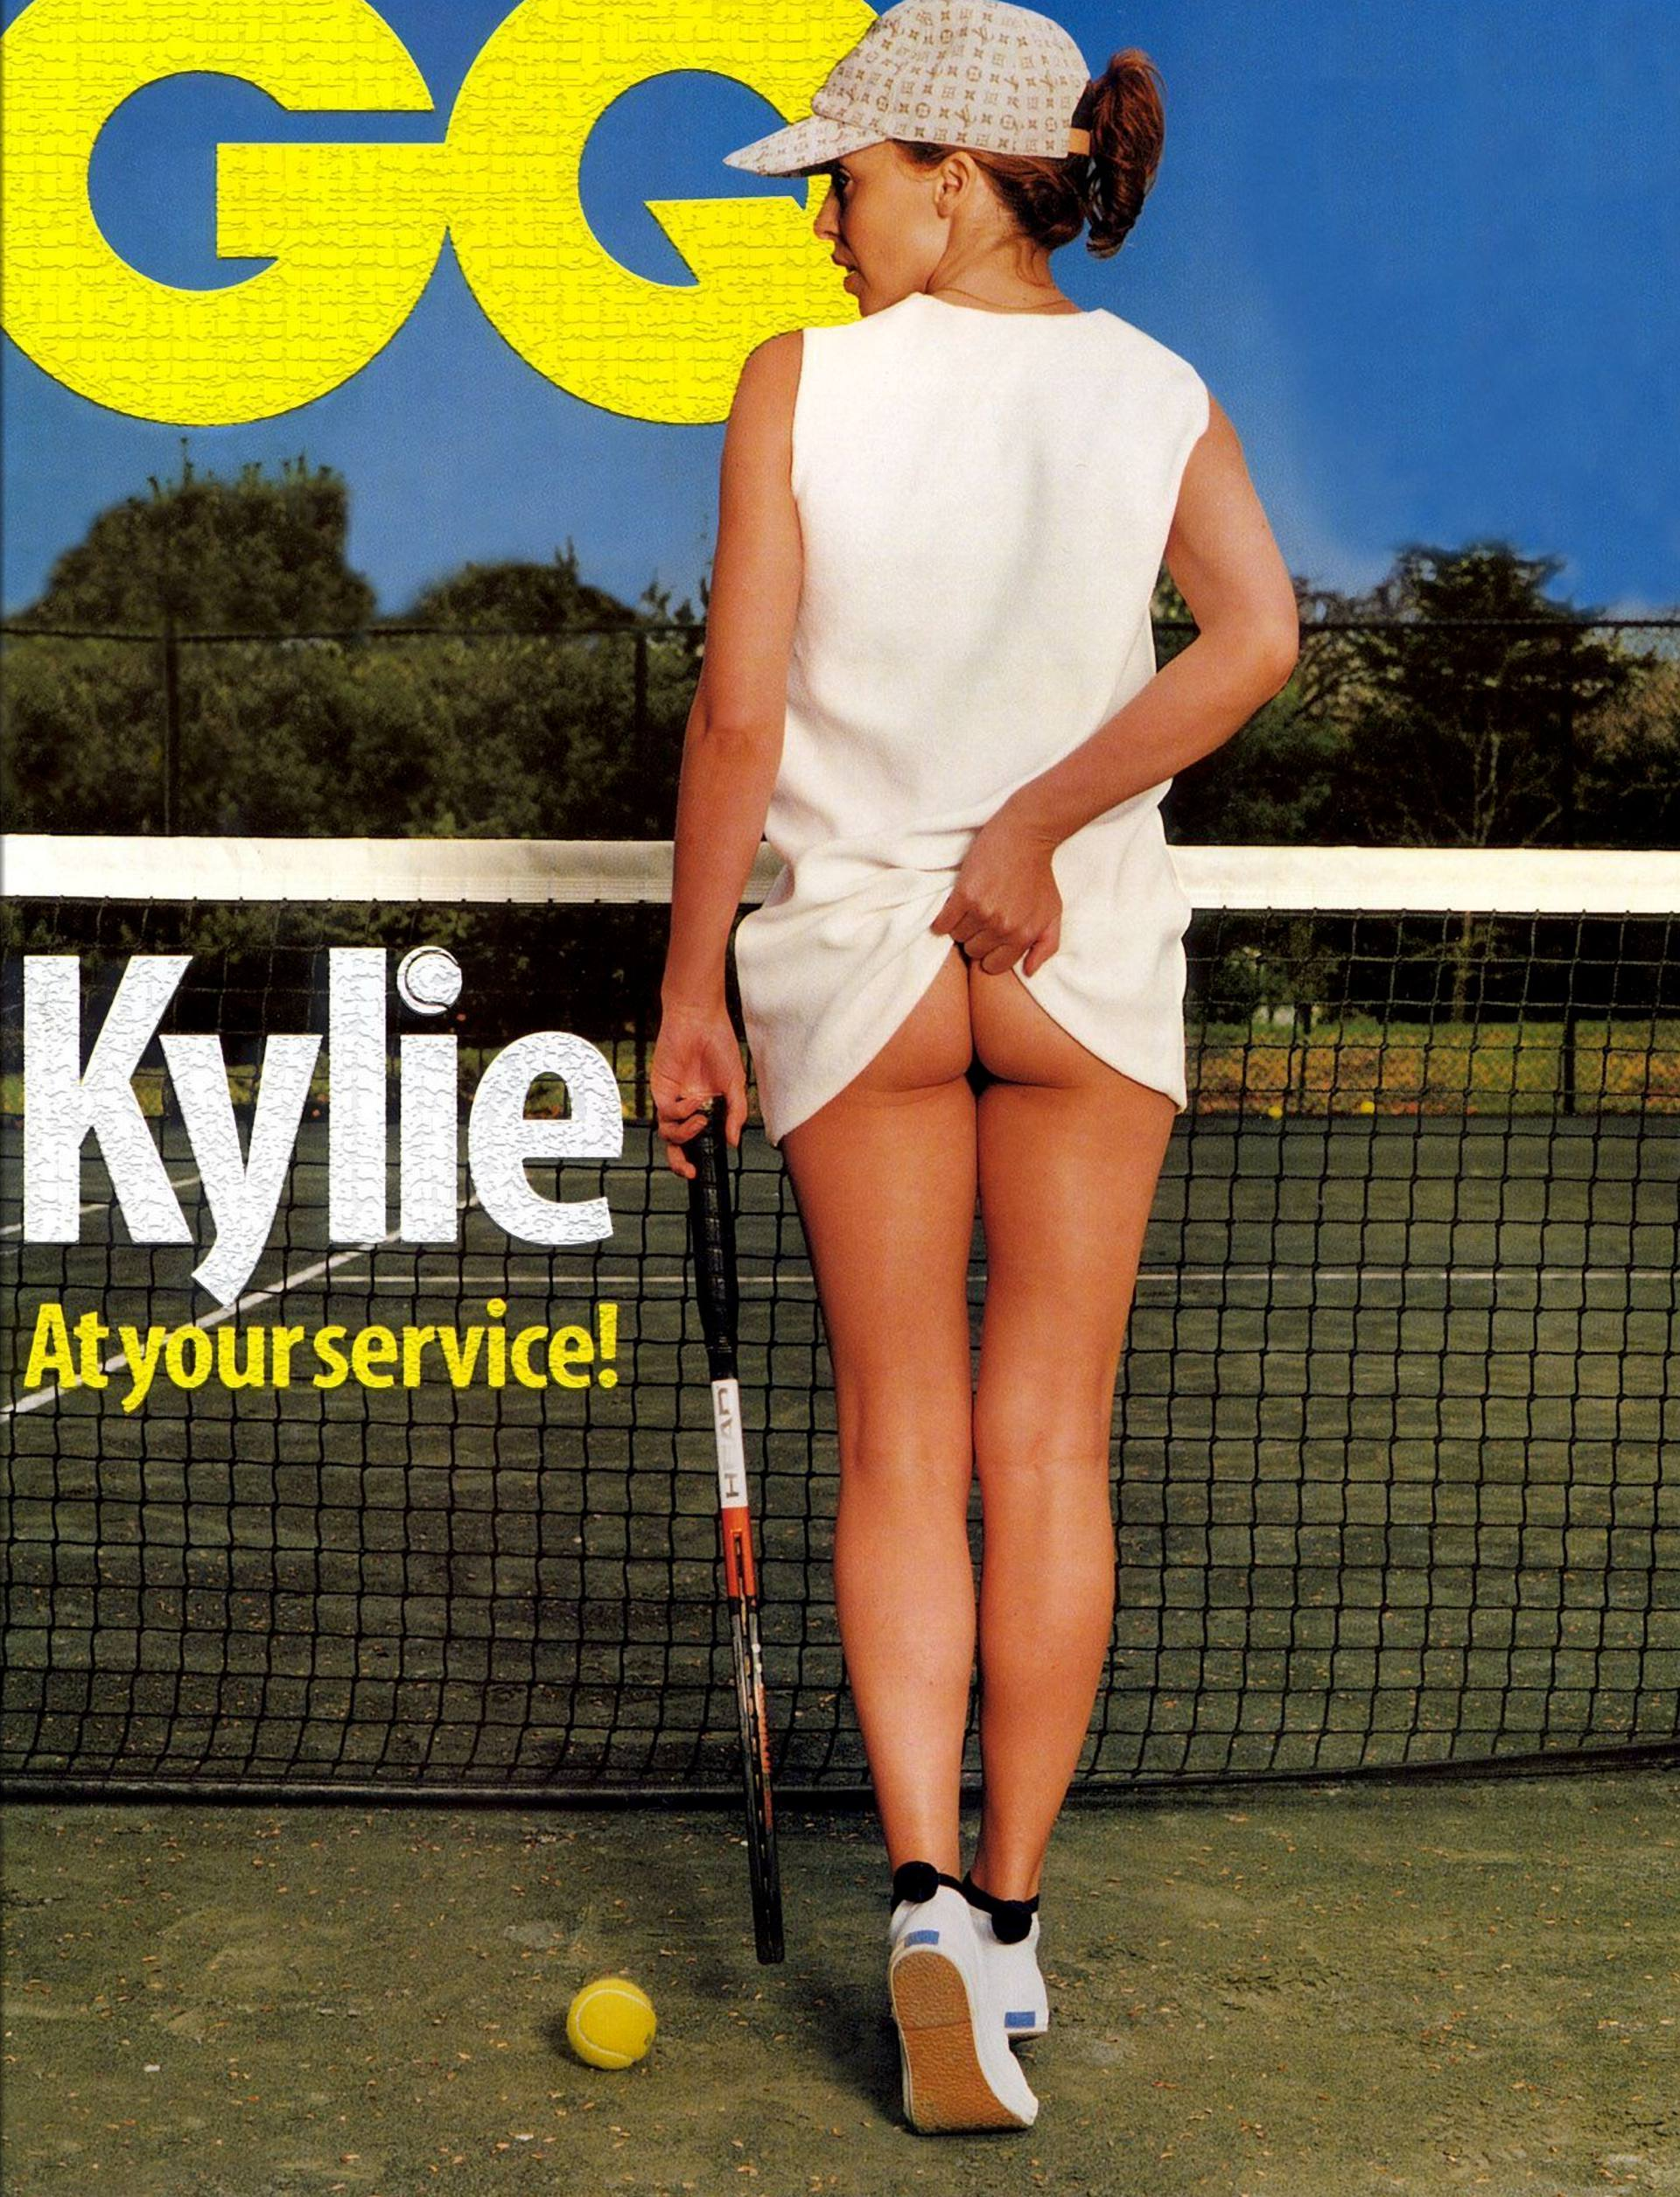 Kylie-Minogue-Ass in-GQ-Magazine-Photoshoot-by-Terry-Richardson-July-2000-3